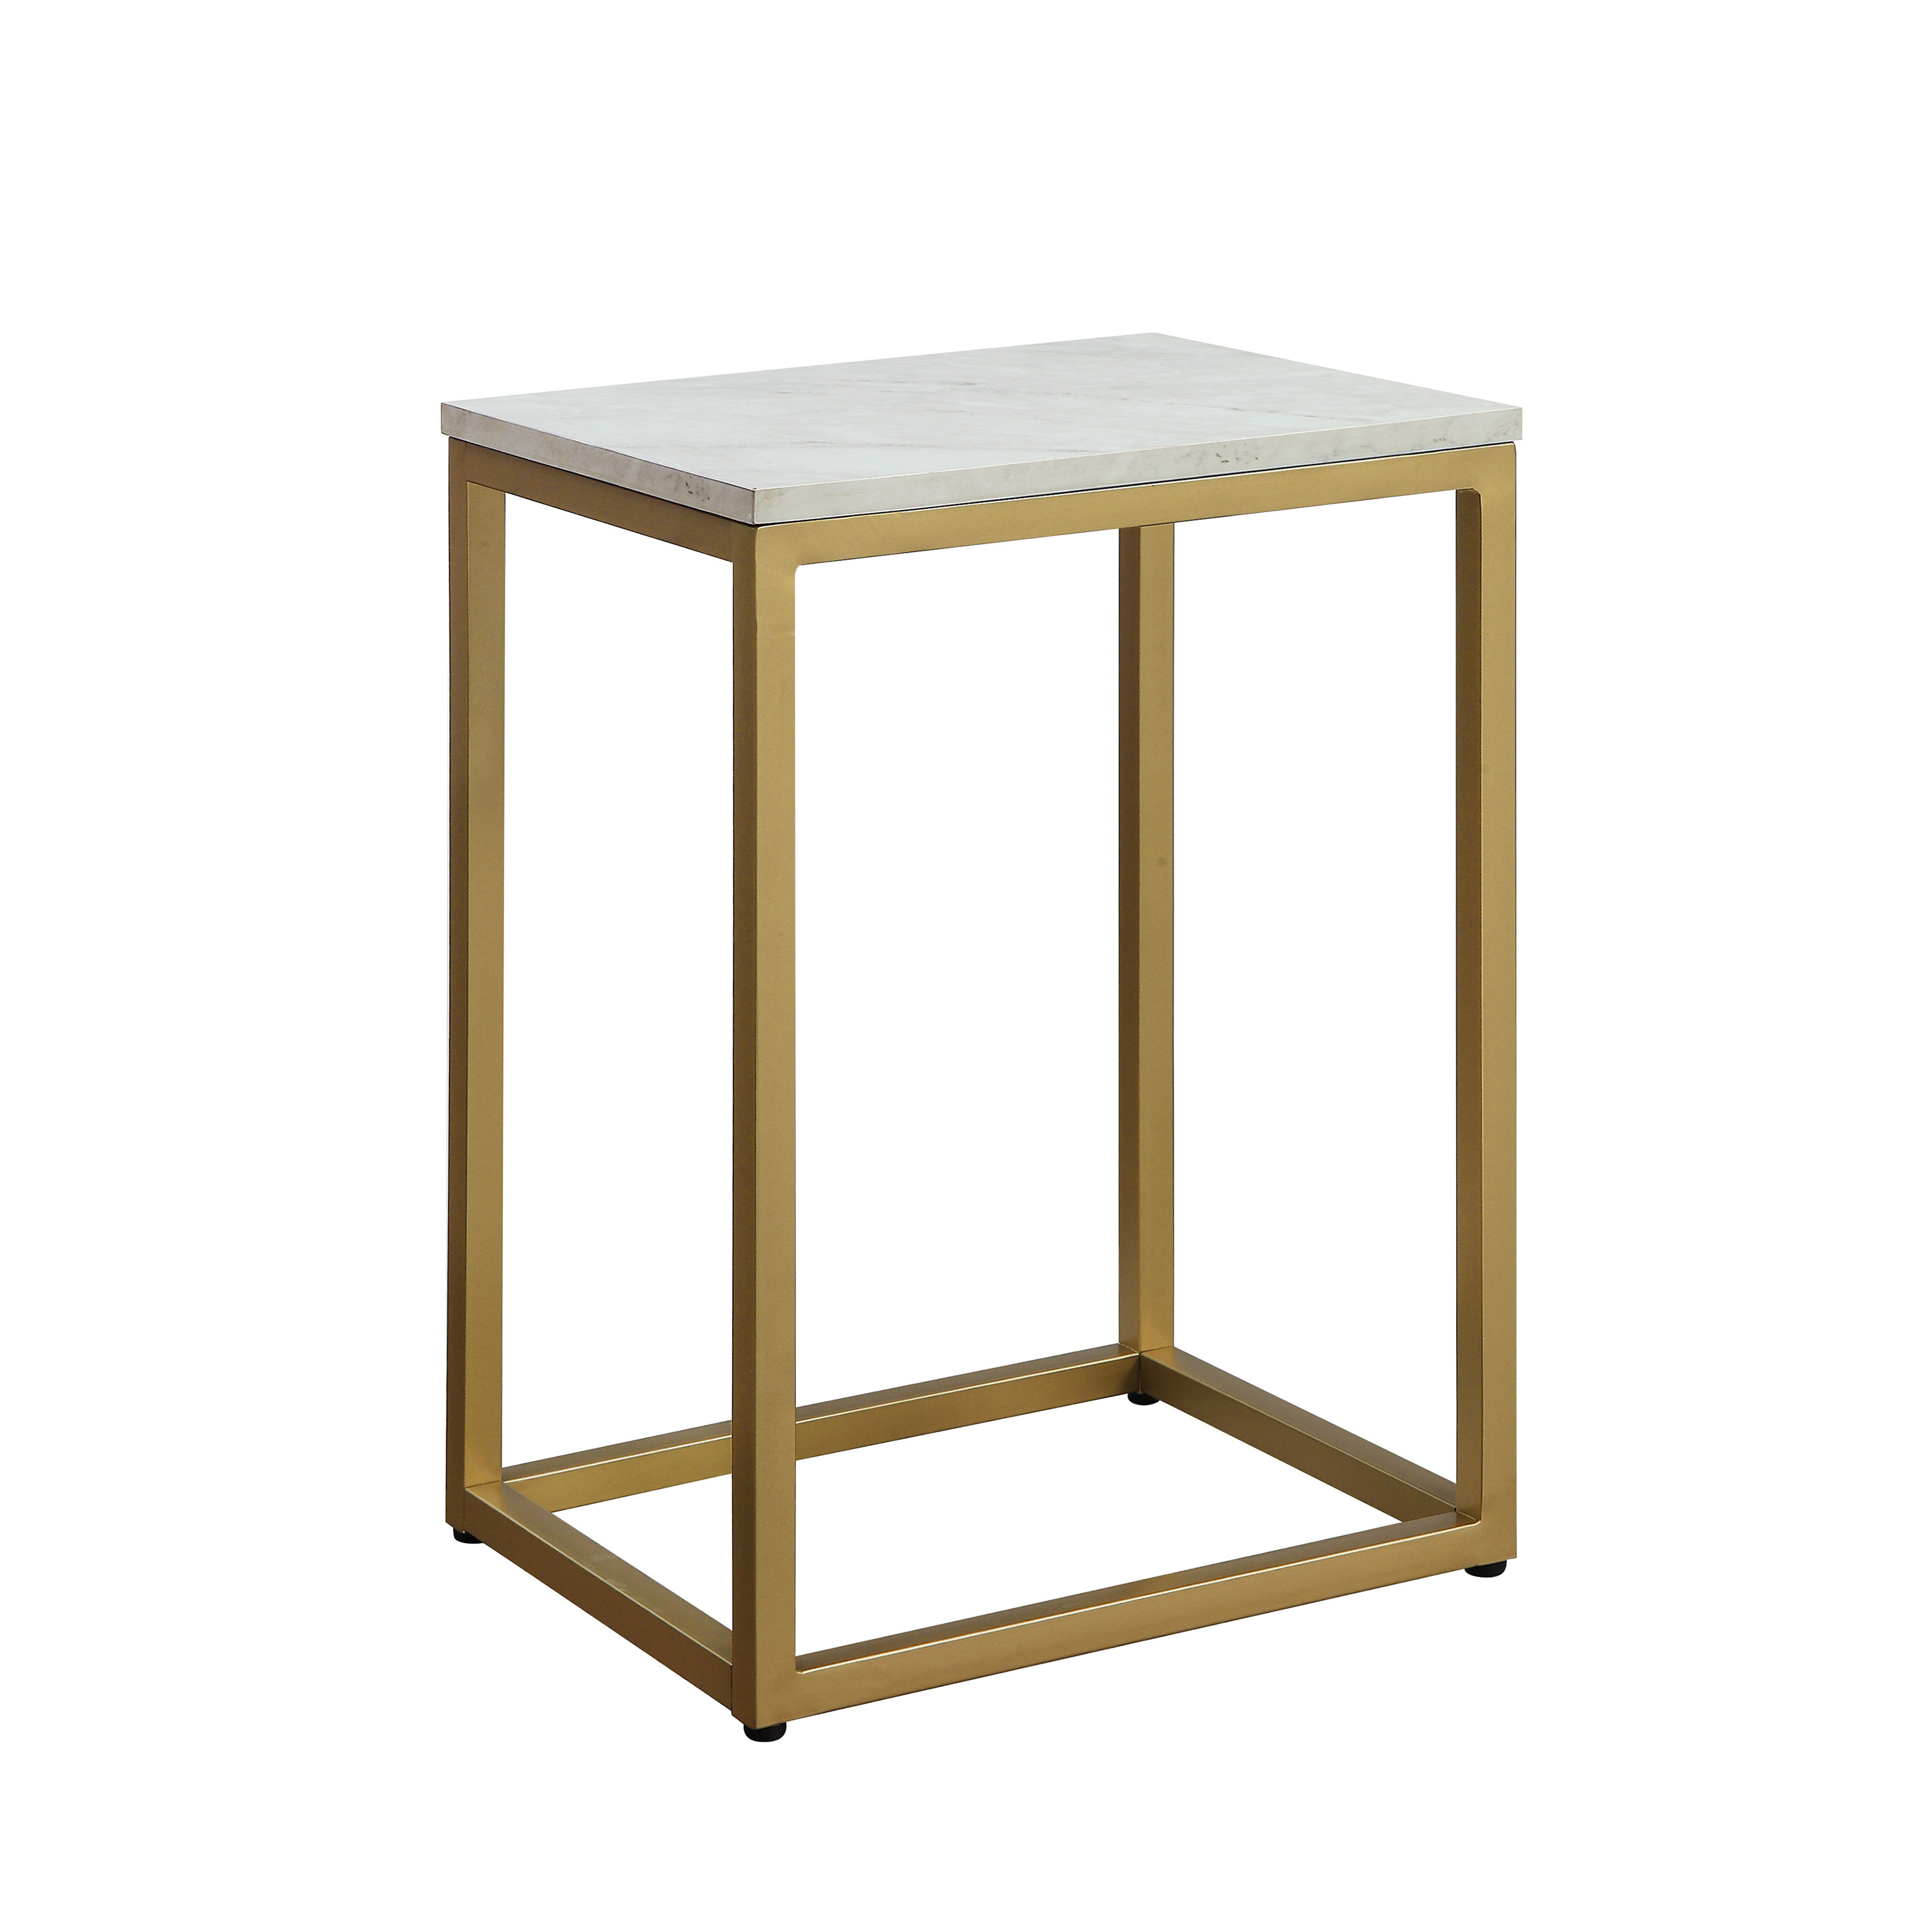 Mainstays End Table with Space-saving design and durable metal frame, Multiple Finishes